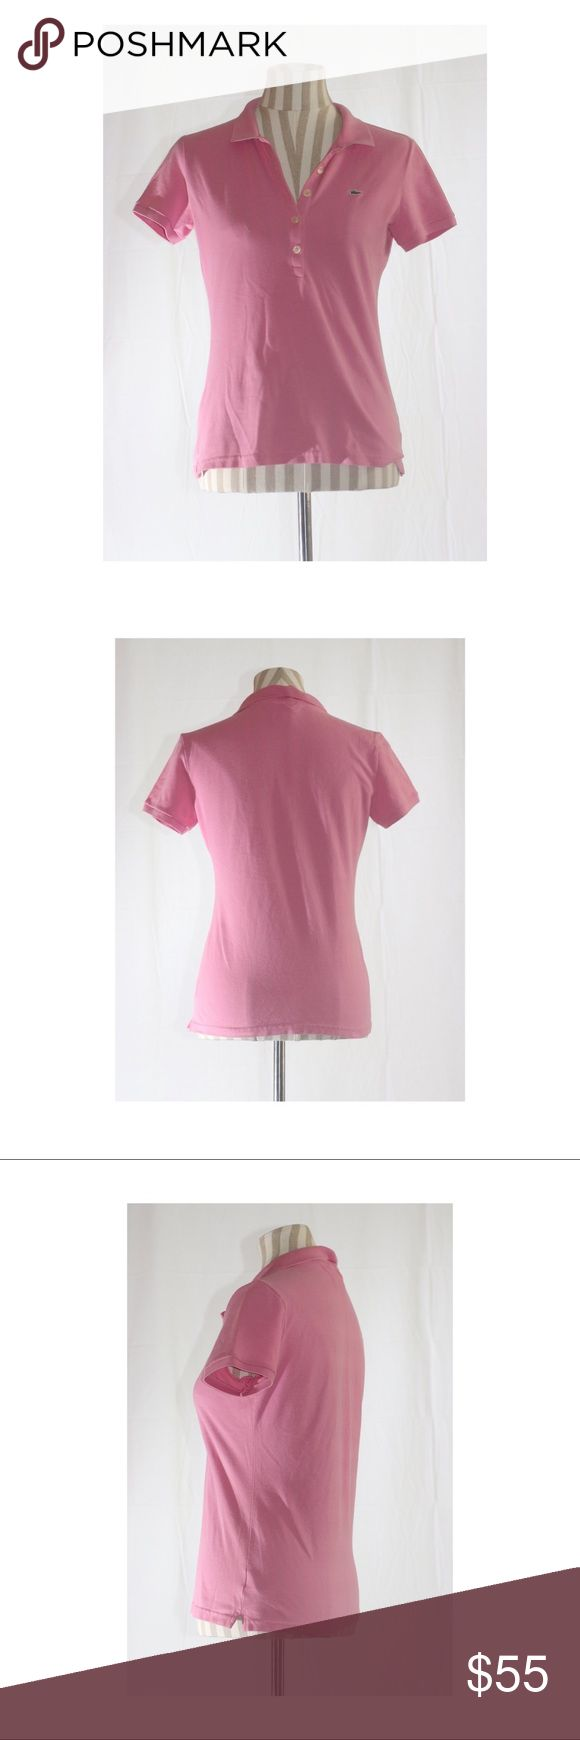 NWOT LACOSTE Pink LOGO Polo Shirt This cute light pink polo is perfect for the polished closet!   PERFECT CONDITION  TAG reads size 42, refer to last picture for OFFICIAL LACOSTE SIZIG CHART. Lacoste Tops